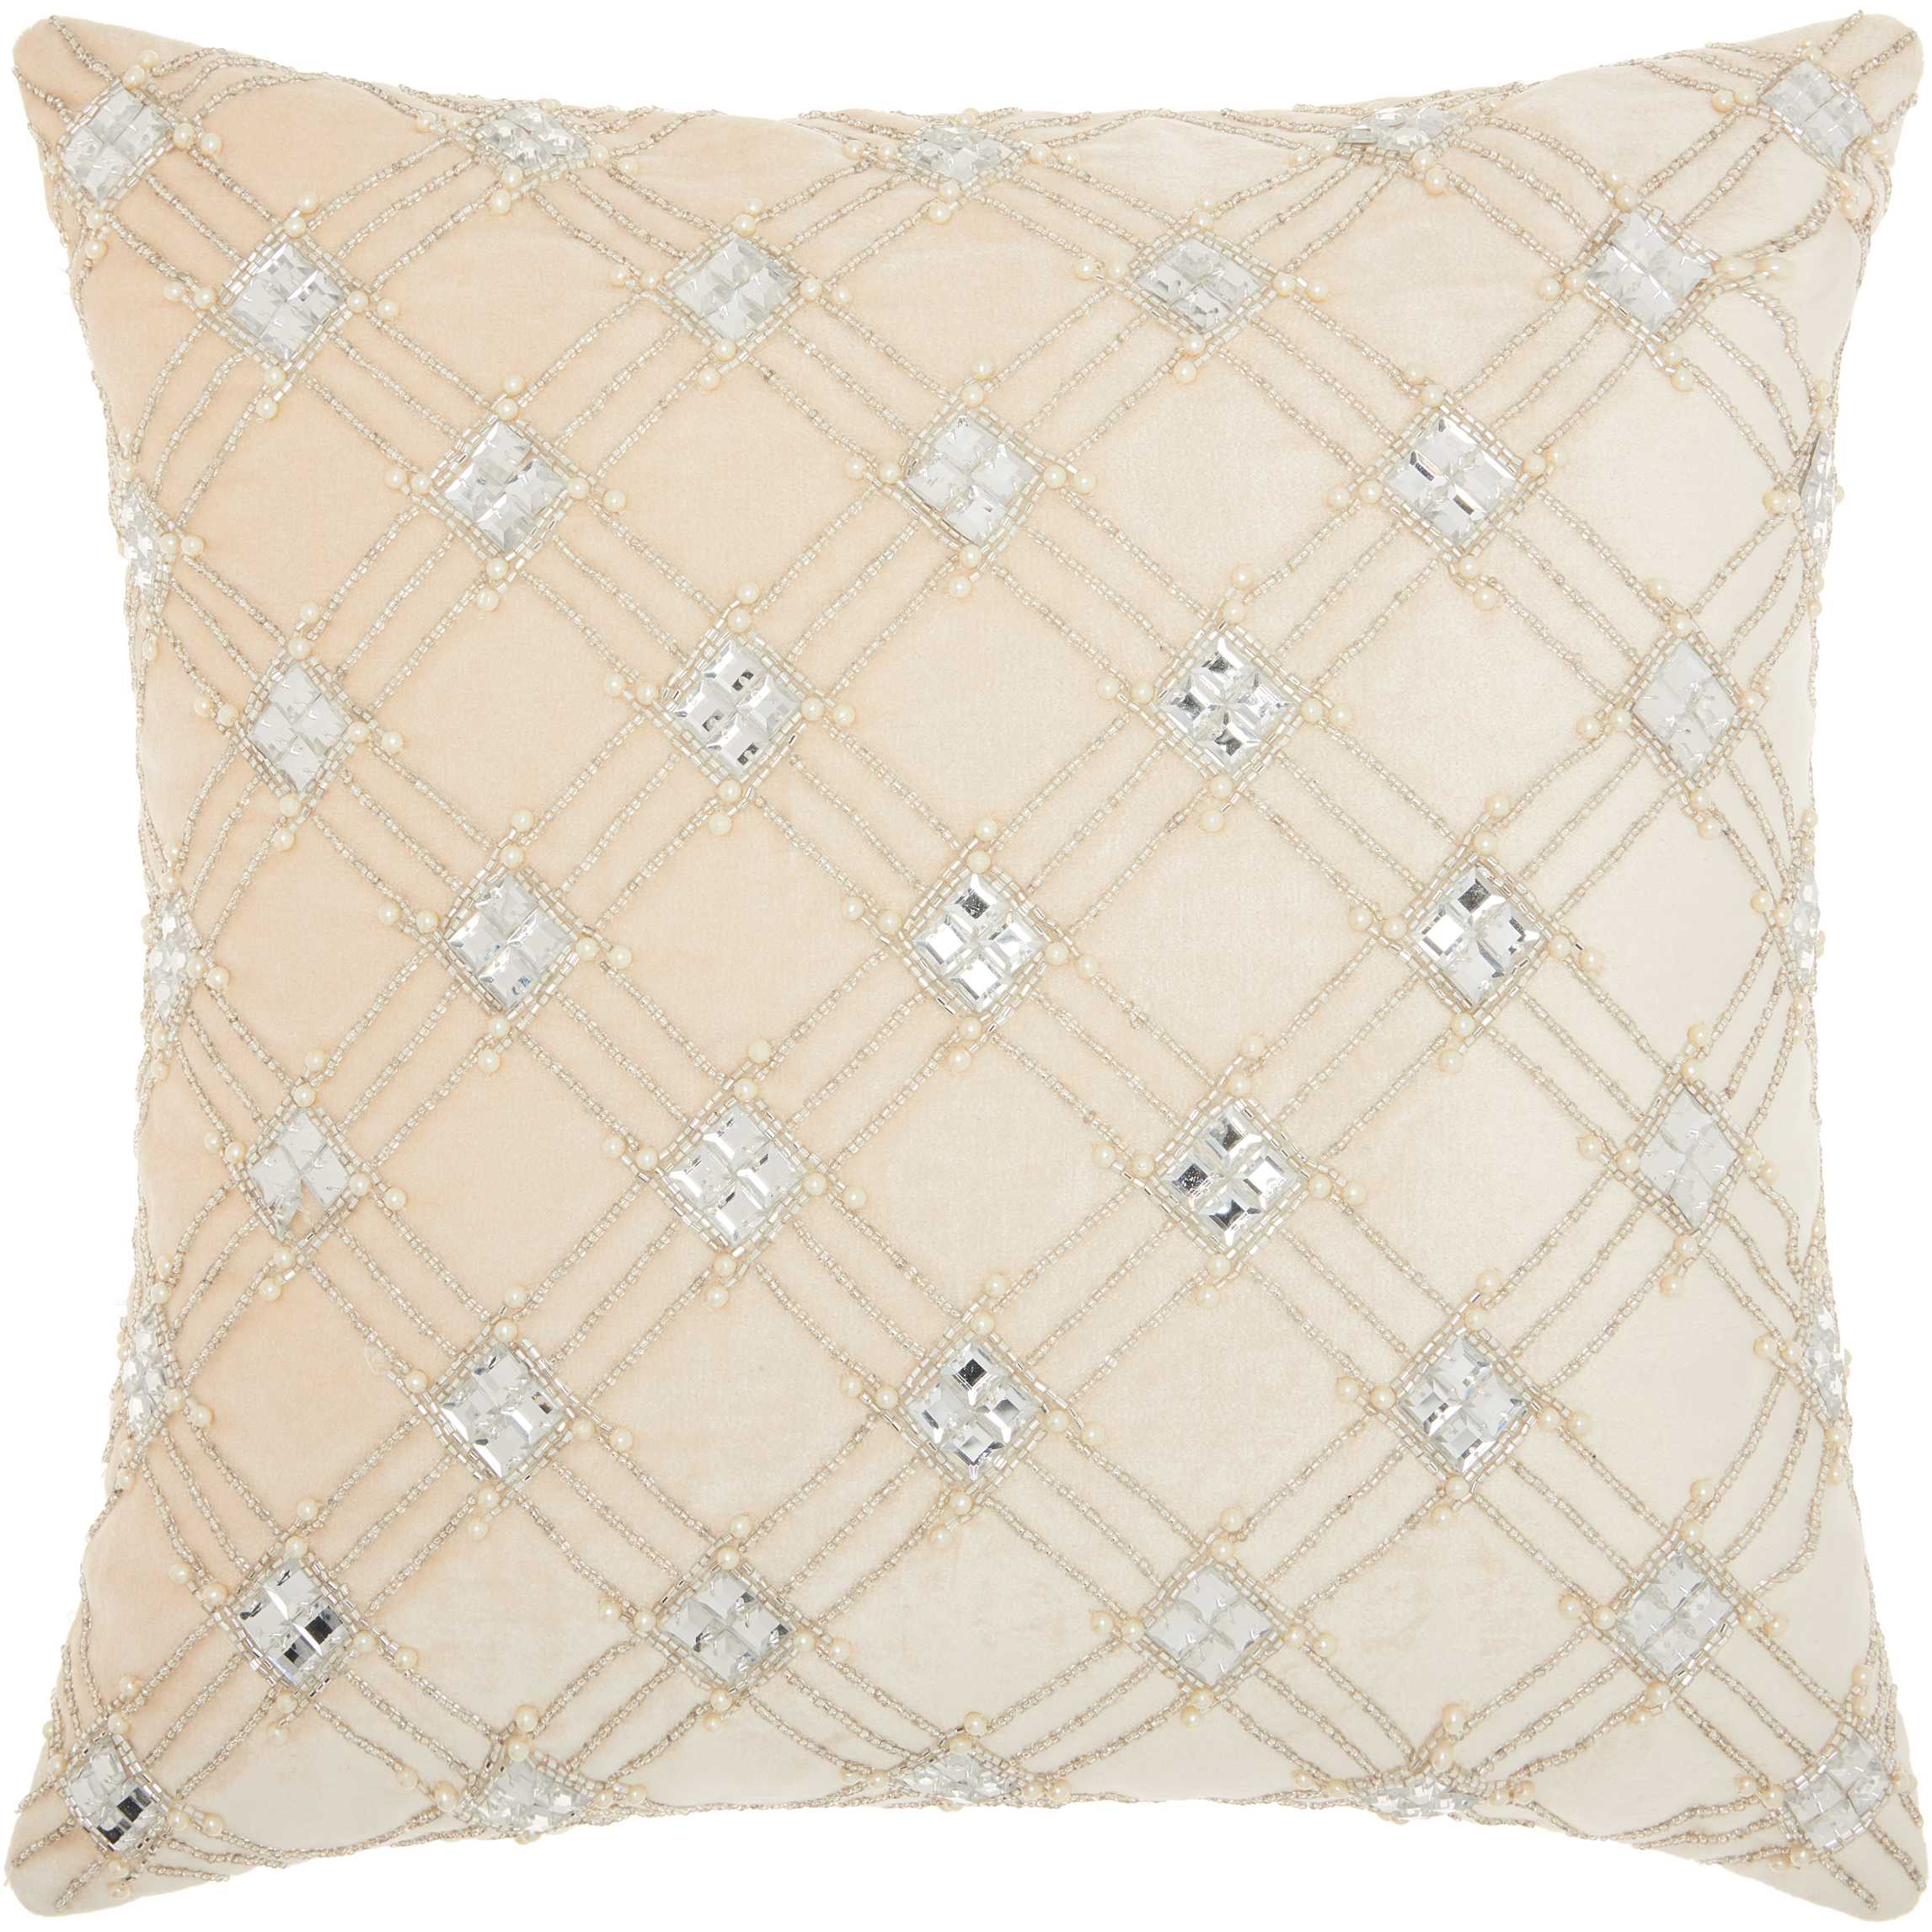 Nourison Couture Luster Diamond Lattice Ivory Throw Pillow by Nourison